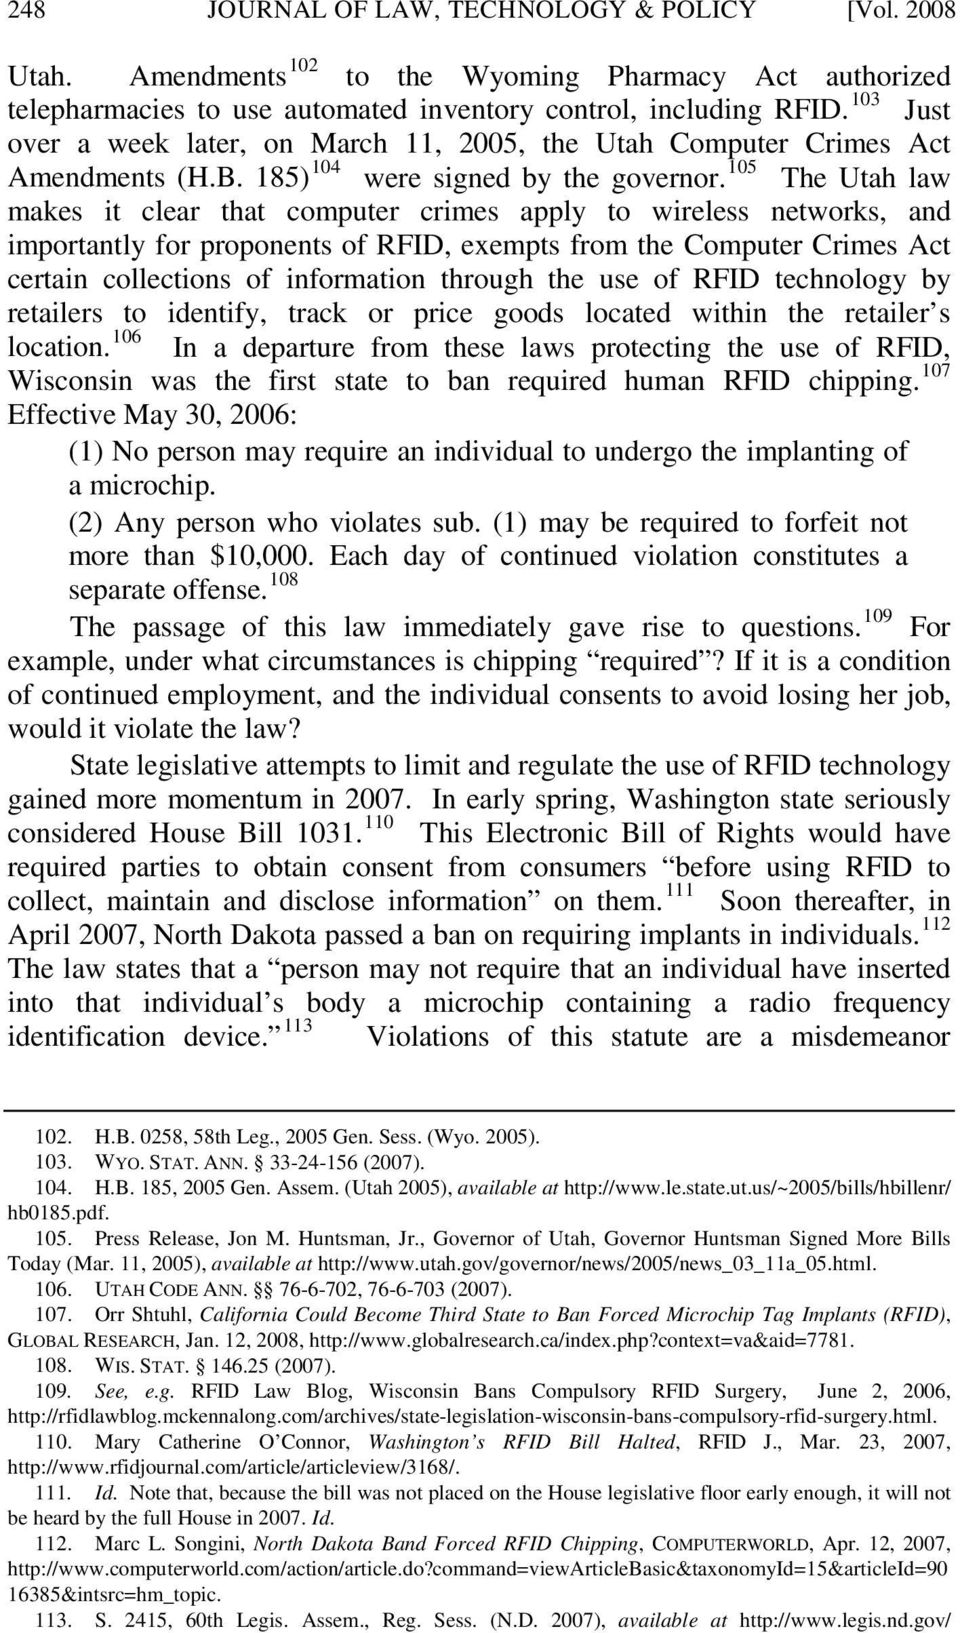 105 The Utah law makes it clear that computer crimes apply to wireless networks, and importantly for proponents of RFID, exempts from the Computer Crimes Act certain collections of information